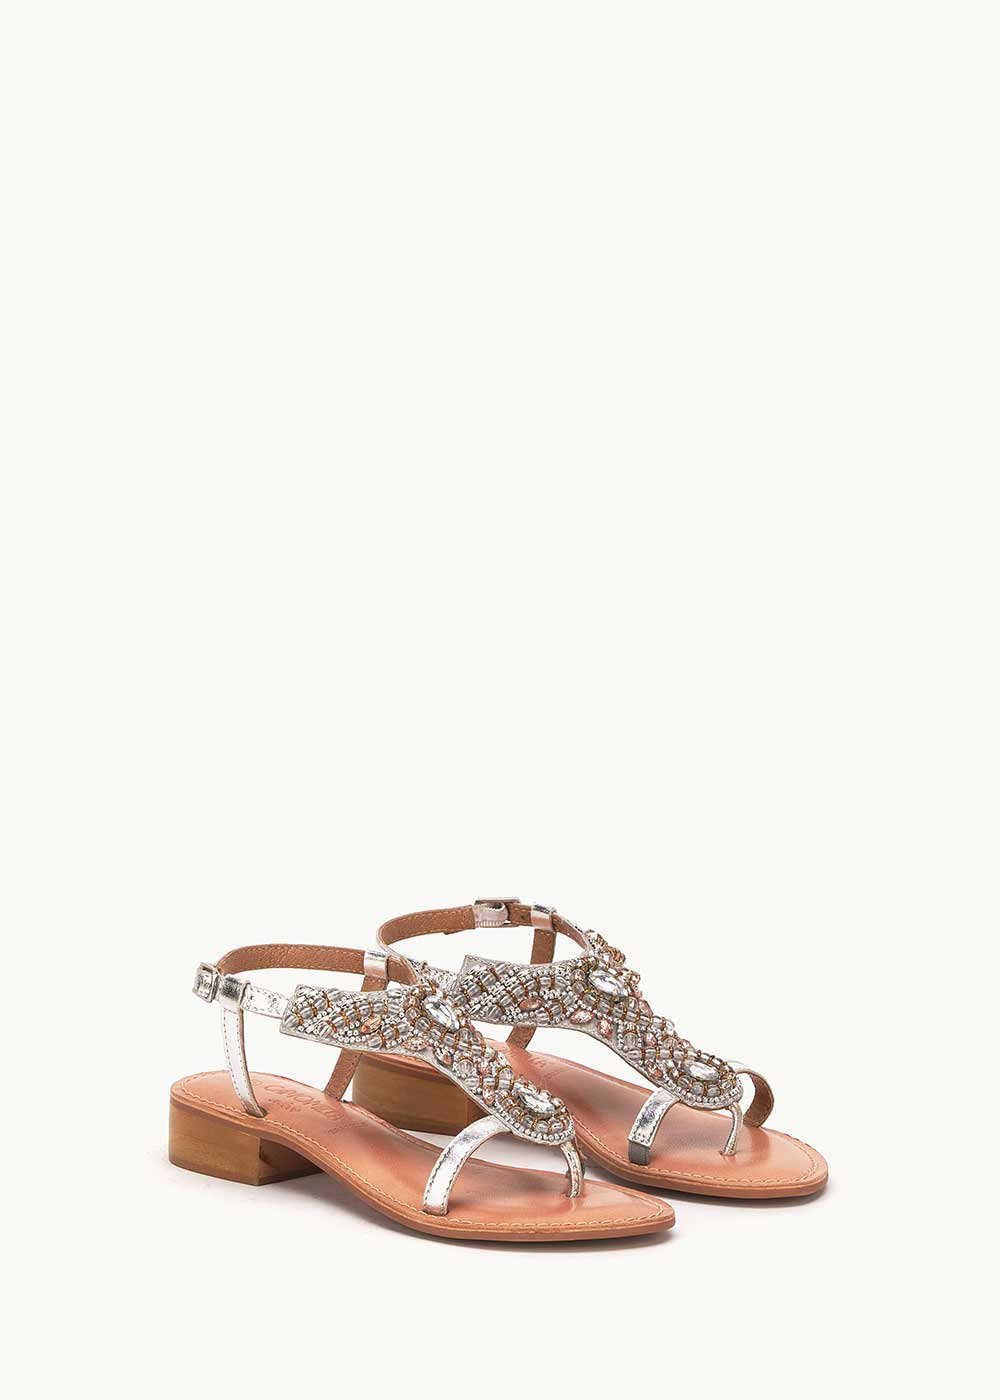 Saemy sandal with detail of crystals and sequins - Silver - Woman